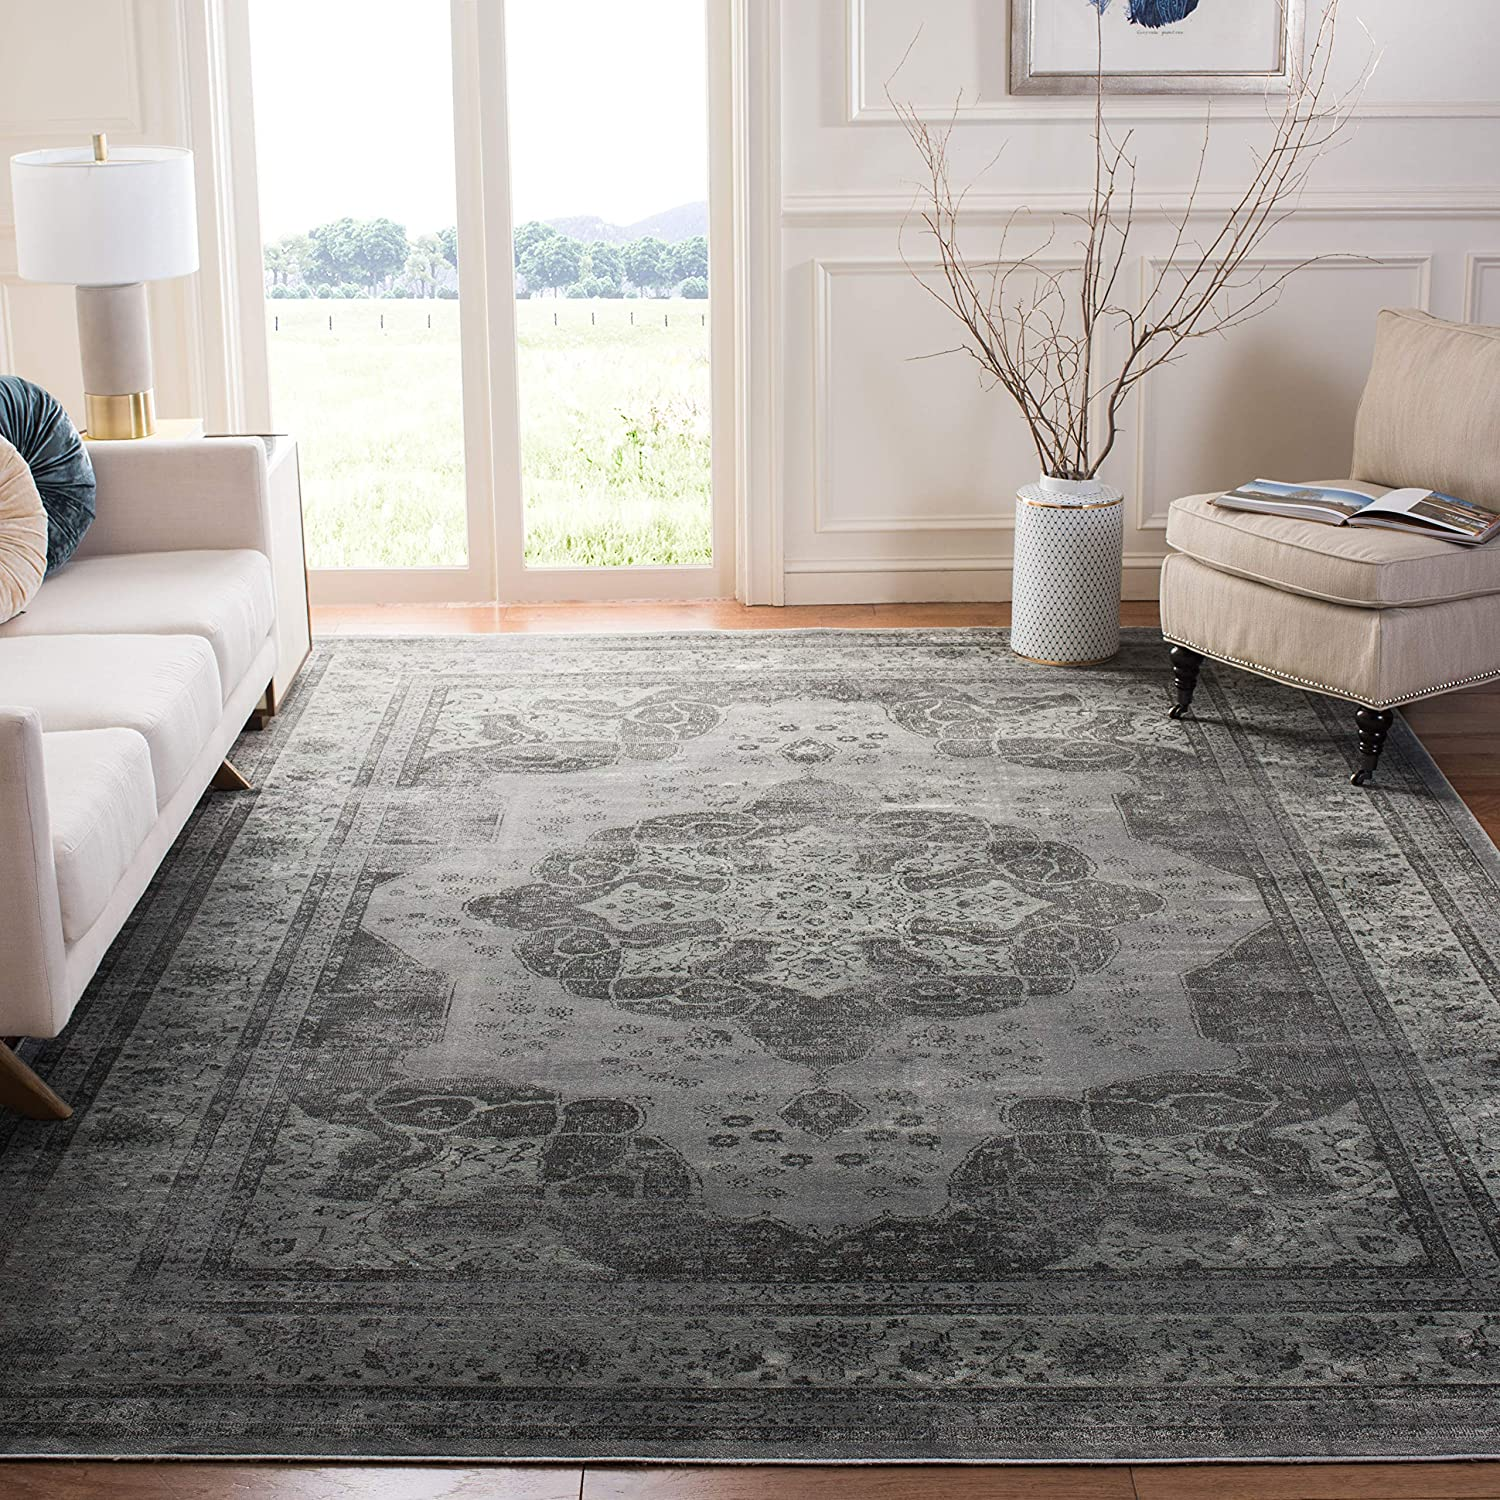 Shop Oriental Medallion Grey and Multi Distressed Silky Viscose Area Rug from Amazon on Openhaus